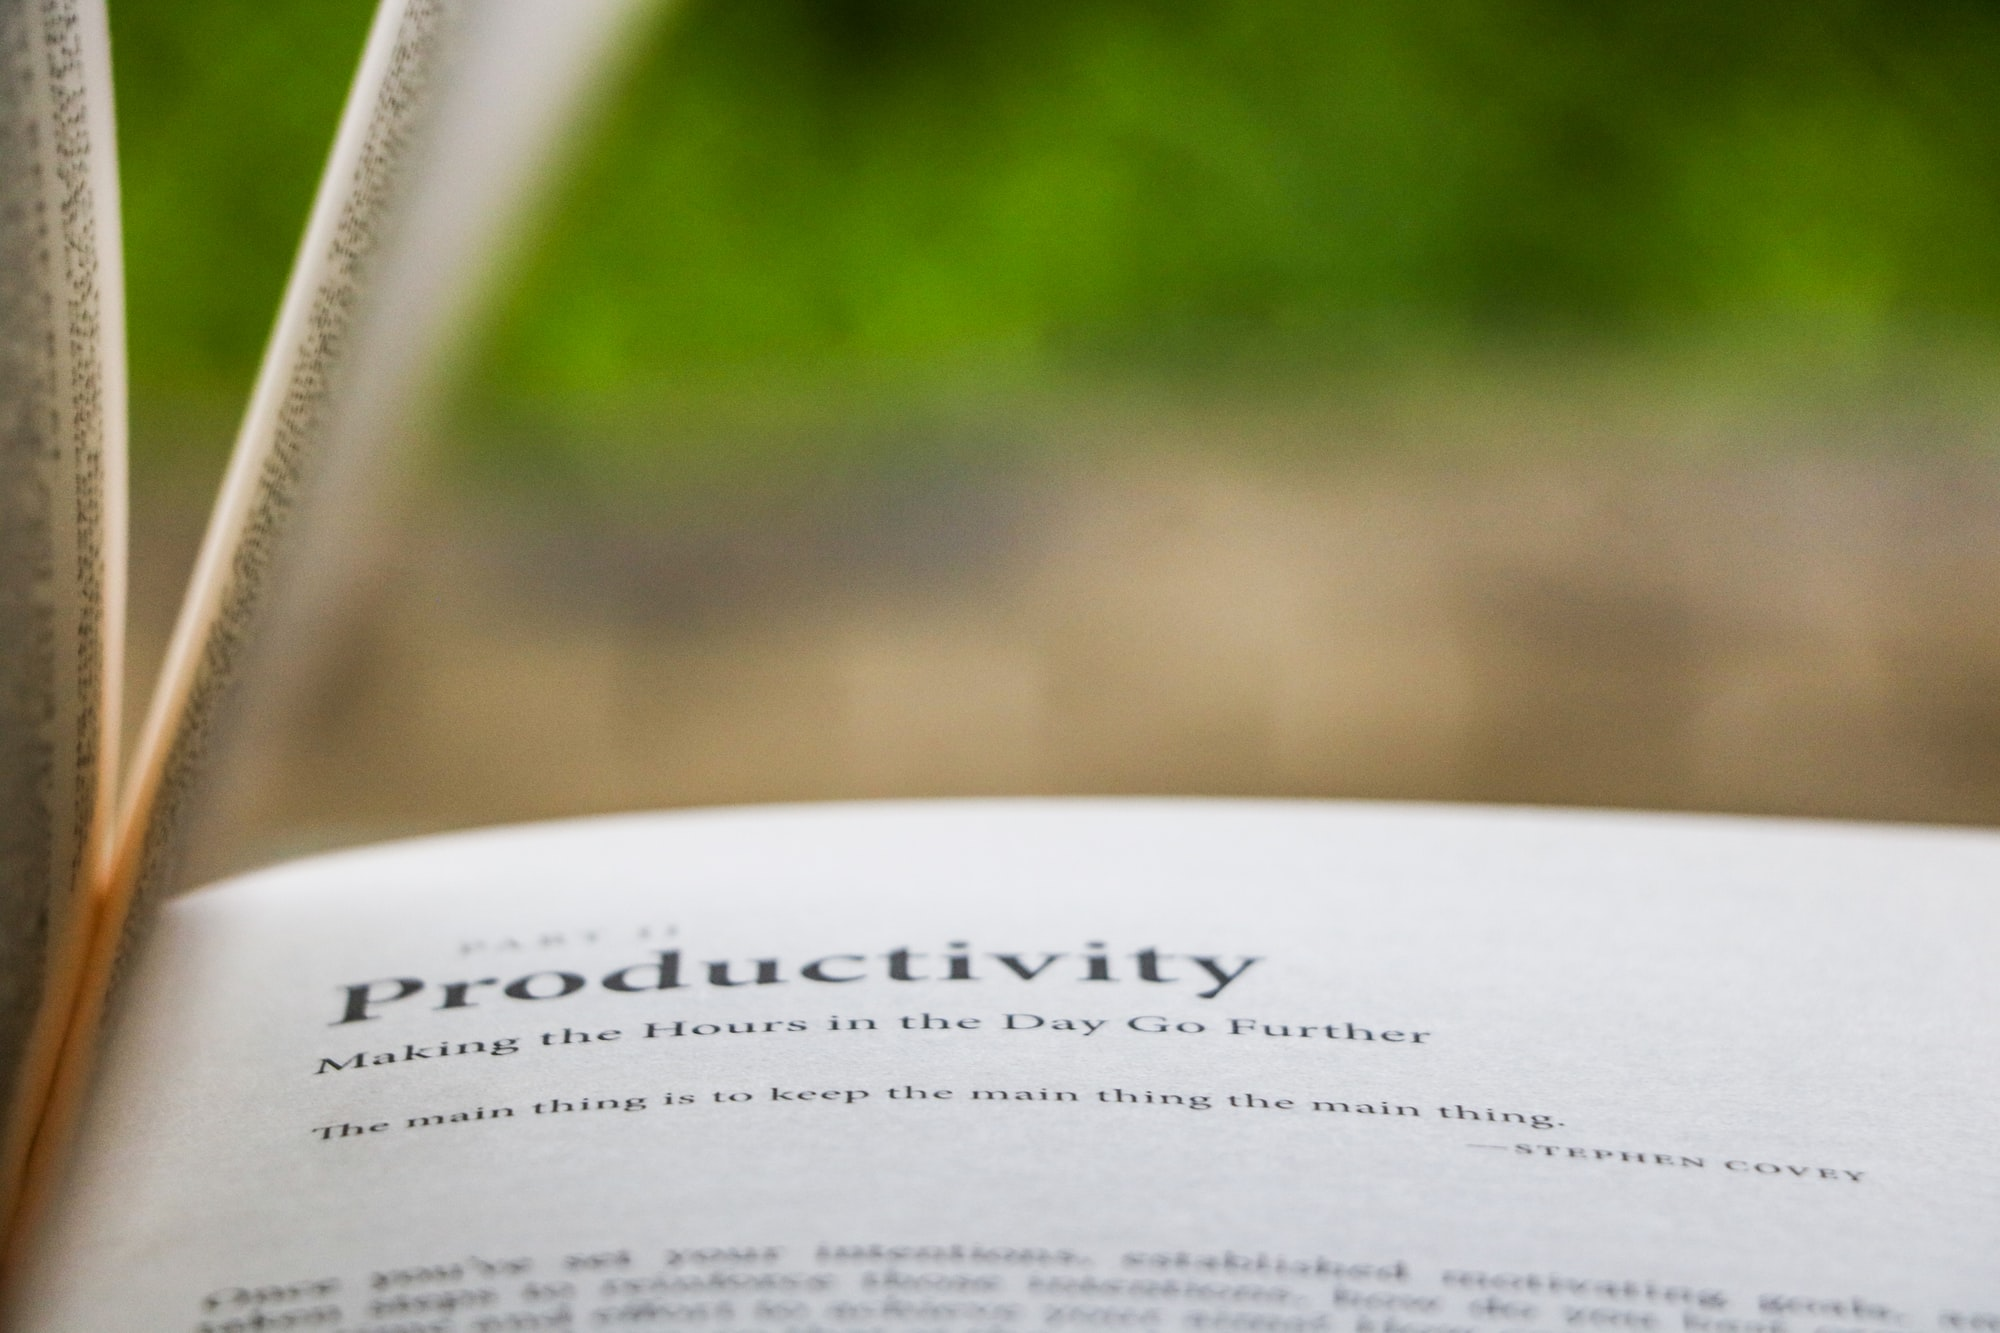 The Principles of Productivity